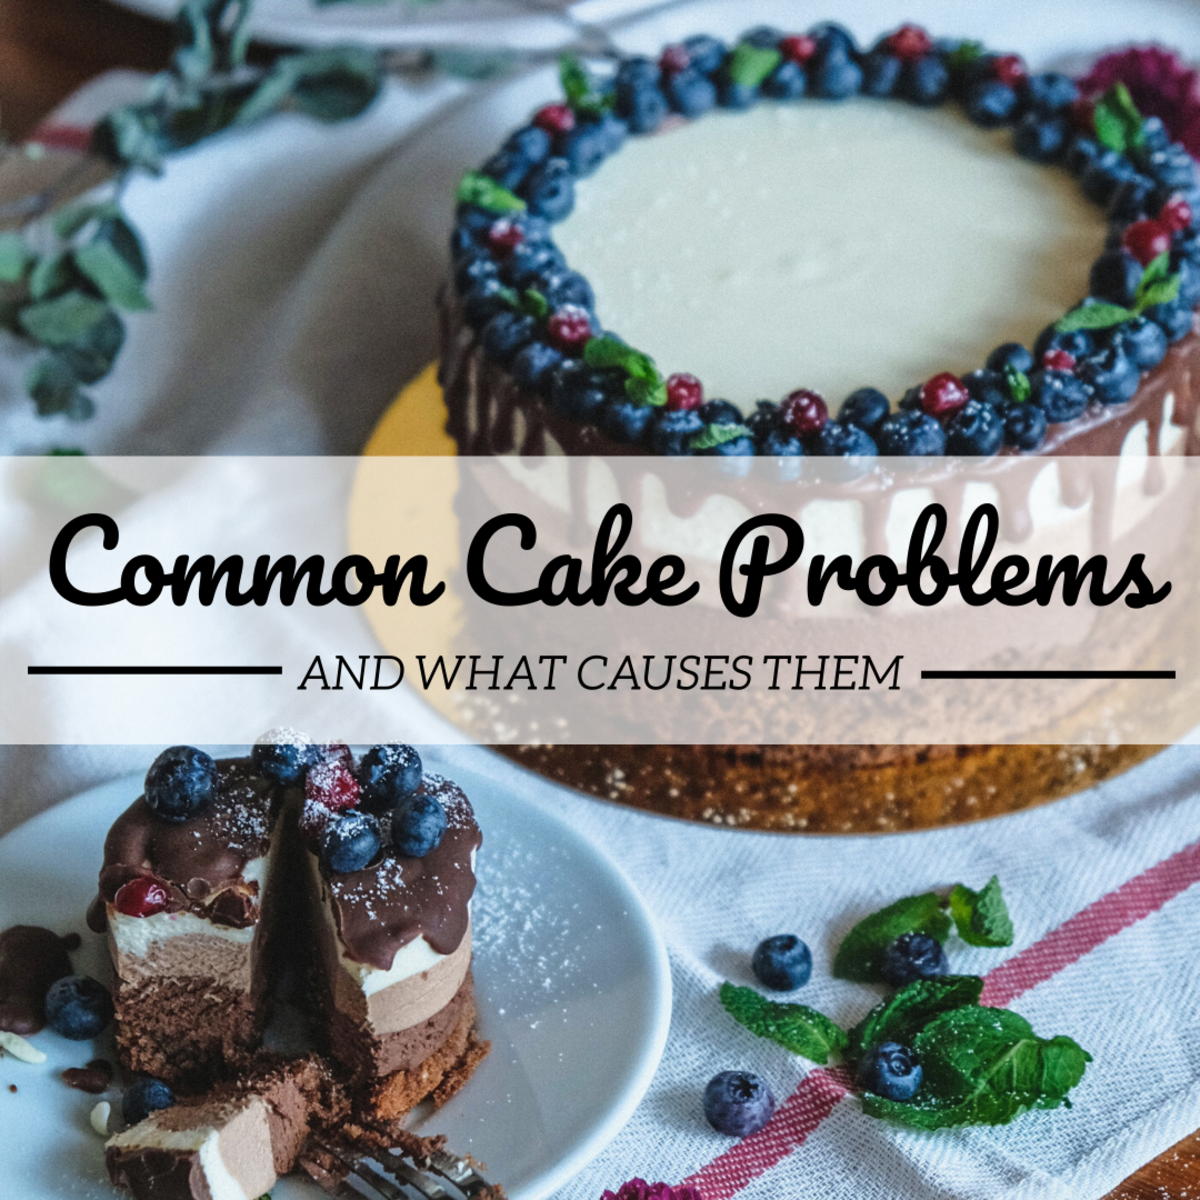 There are many things that can go wrong when baking a cake. Learn how to identify and avoid these 10 common missteps.